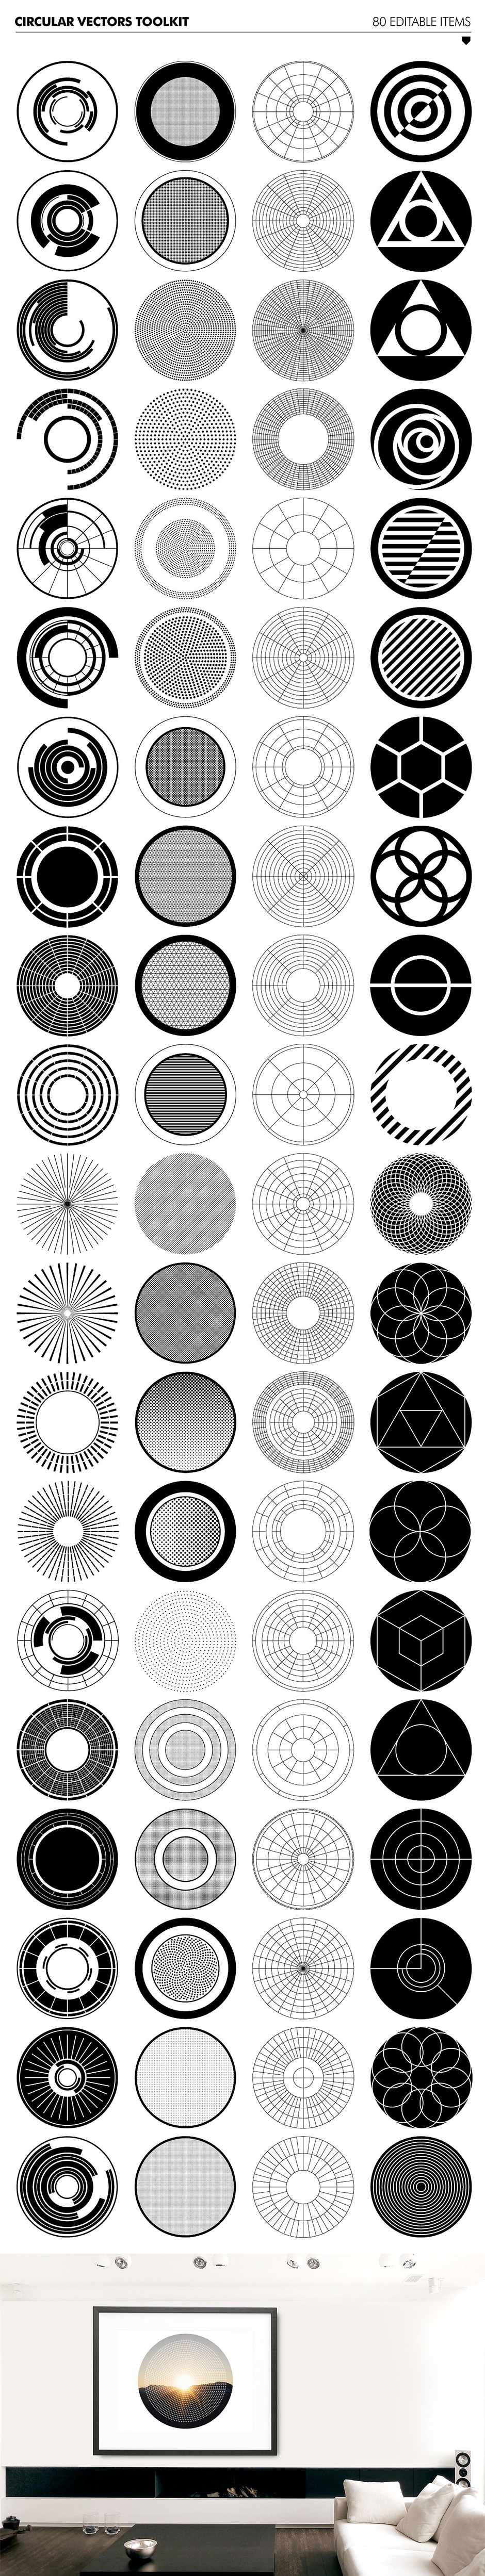 The Totally Diverse Vectors Collection